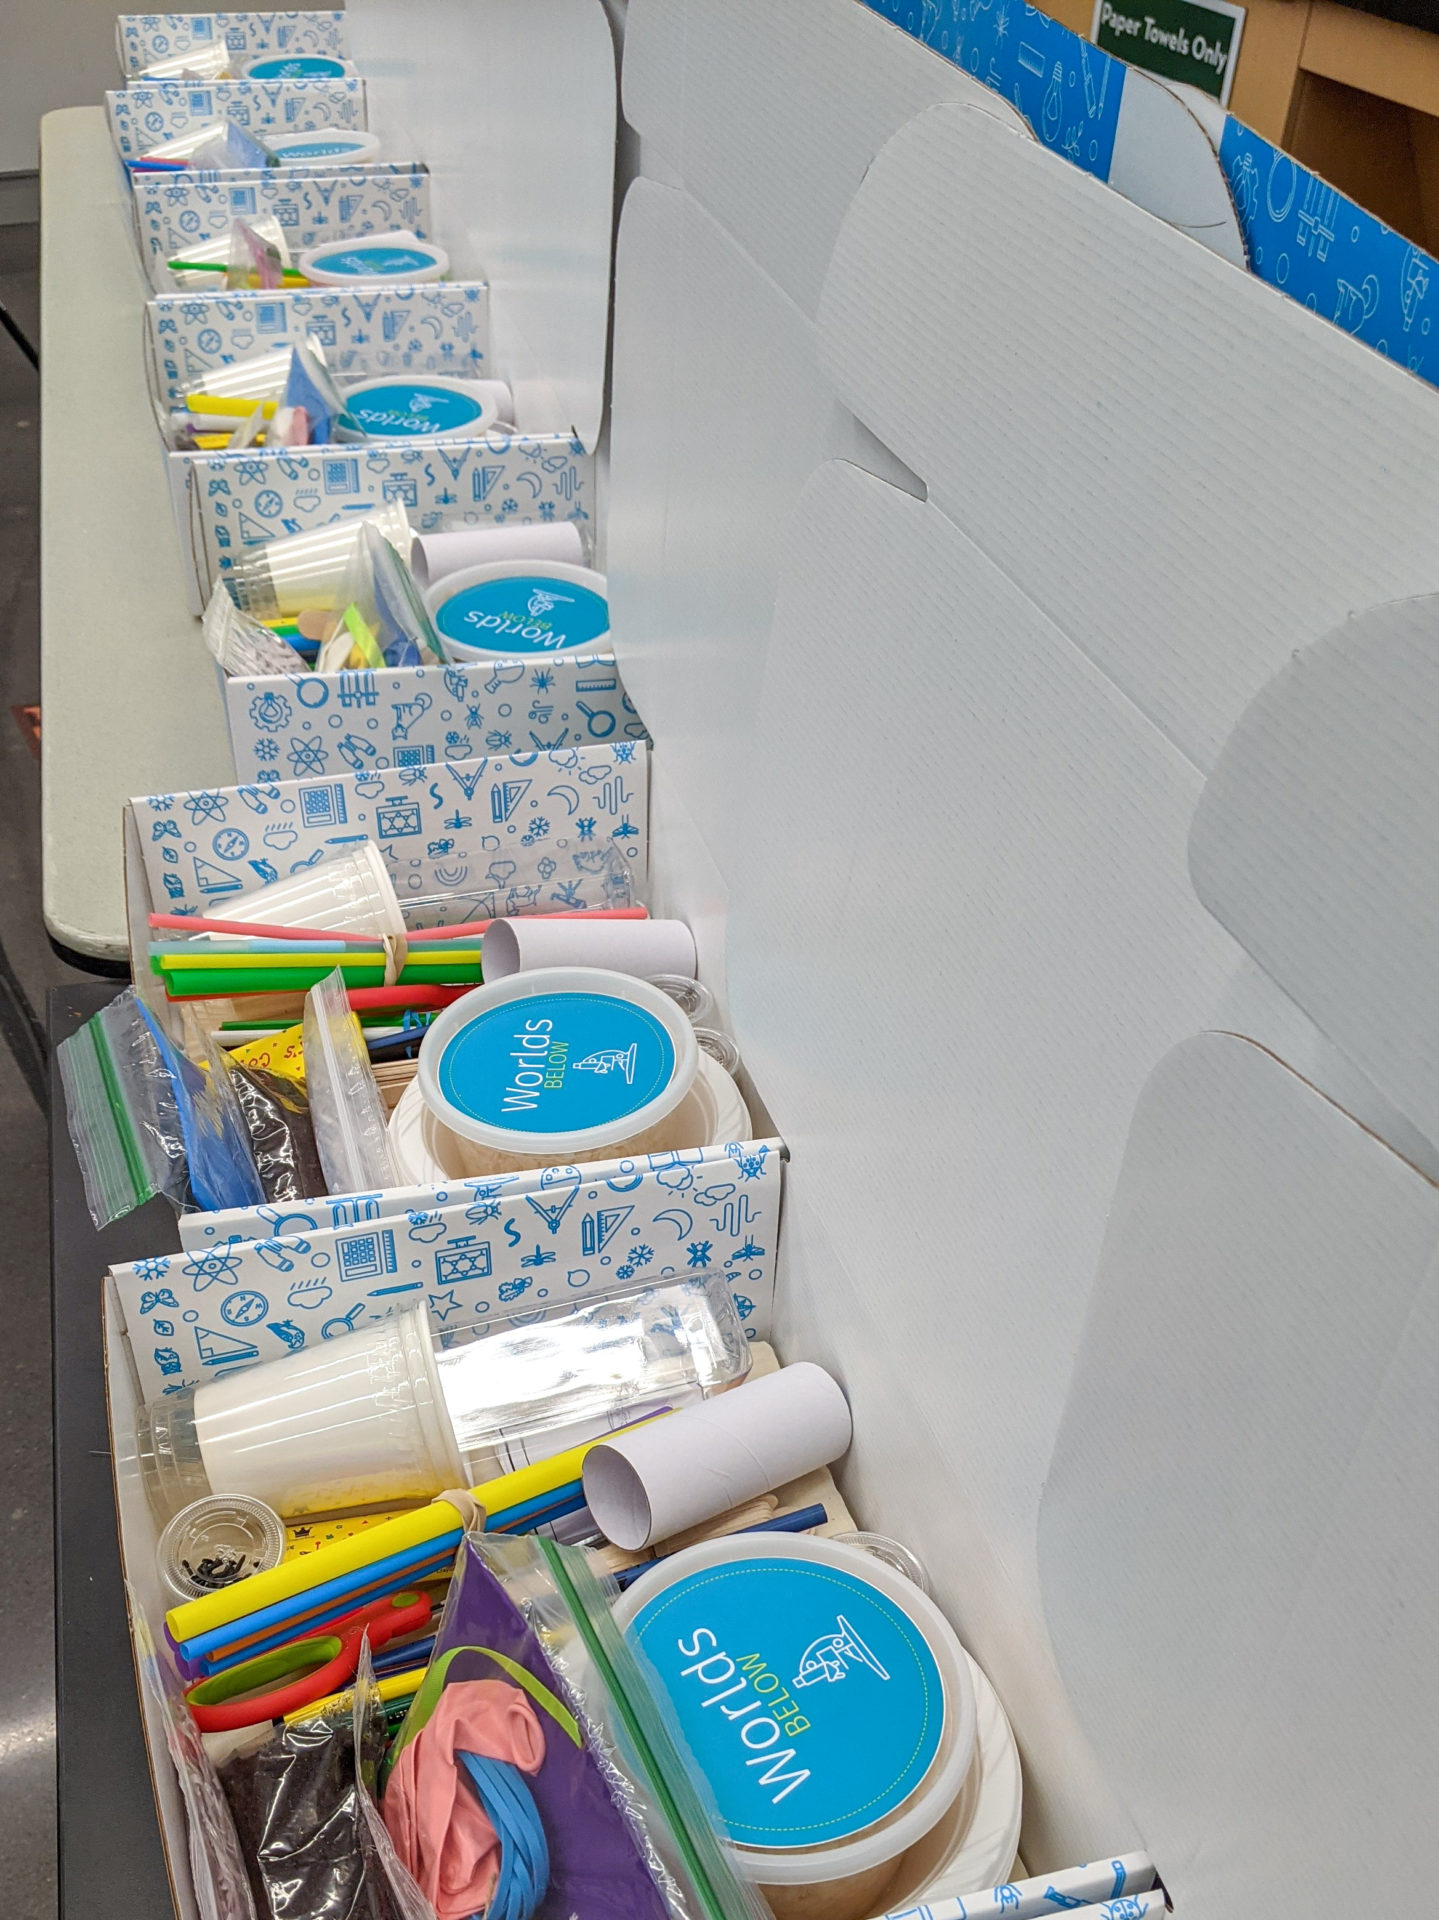 Camp boxes open with multiple supplies